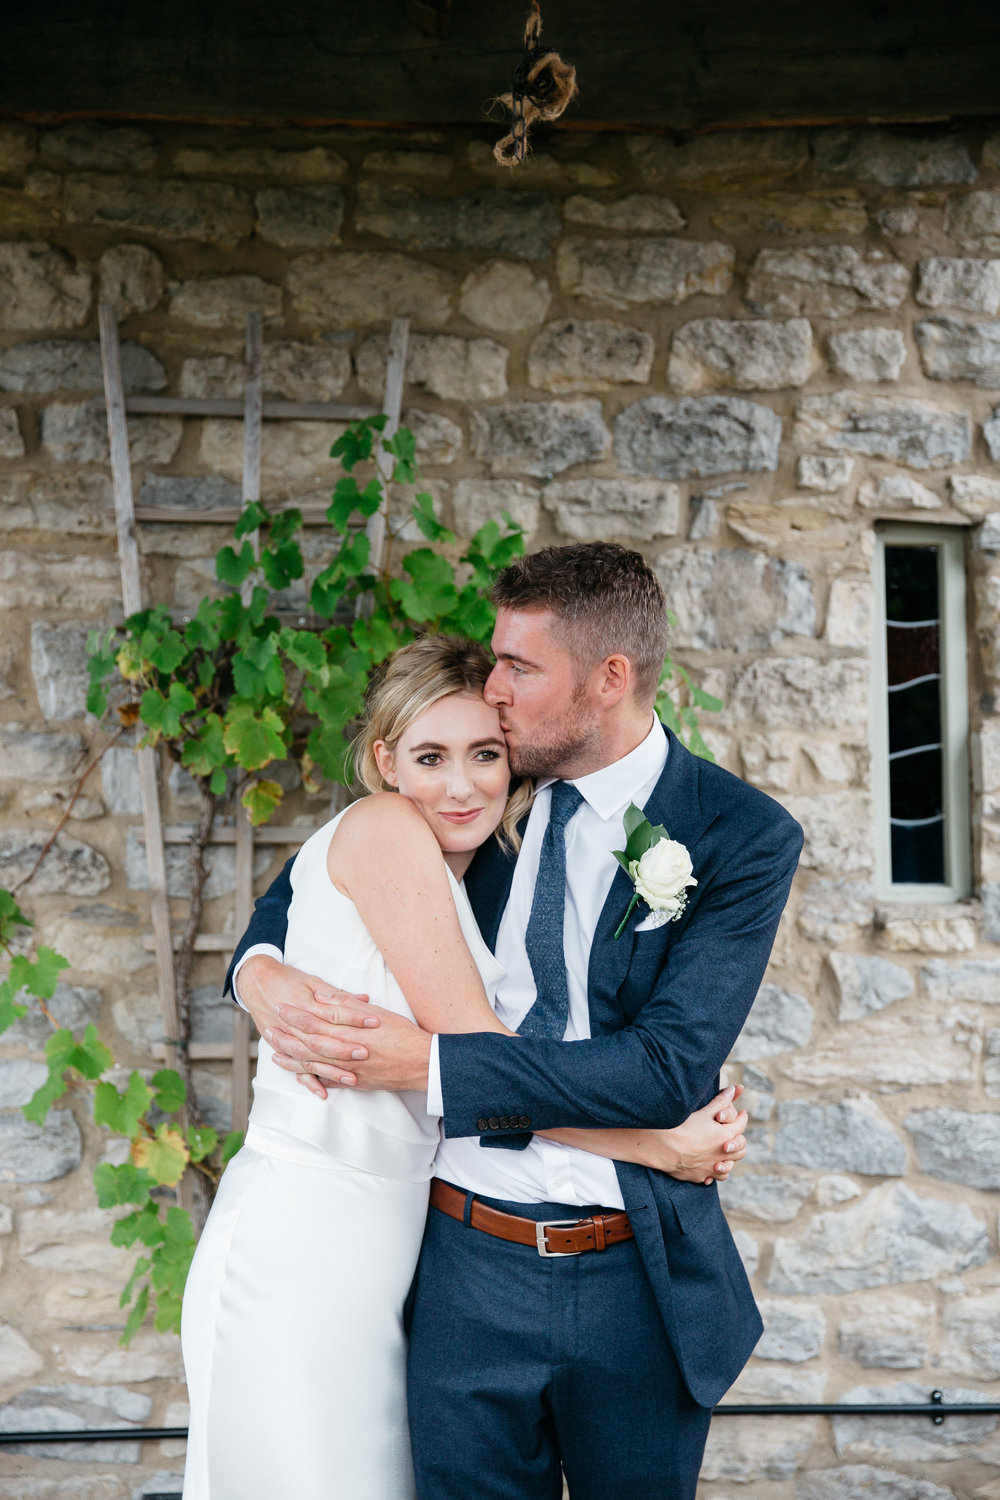 Rosie & Tom's wedding at The Star Inn Harome